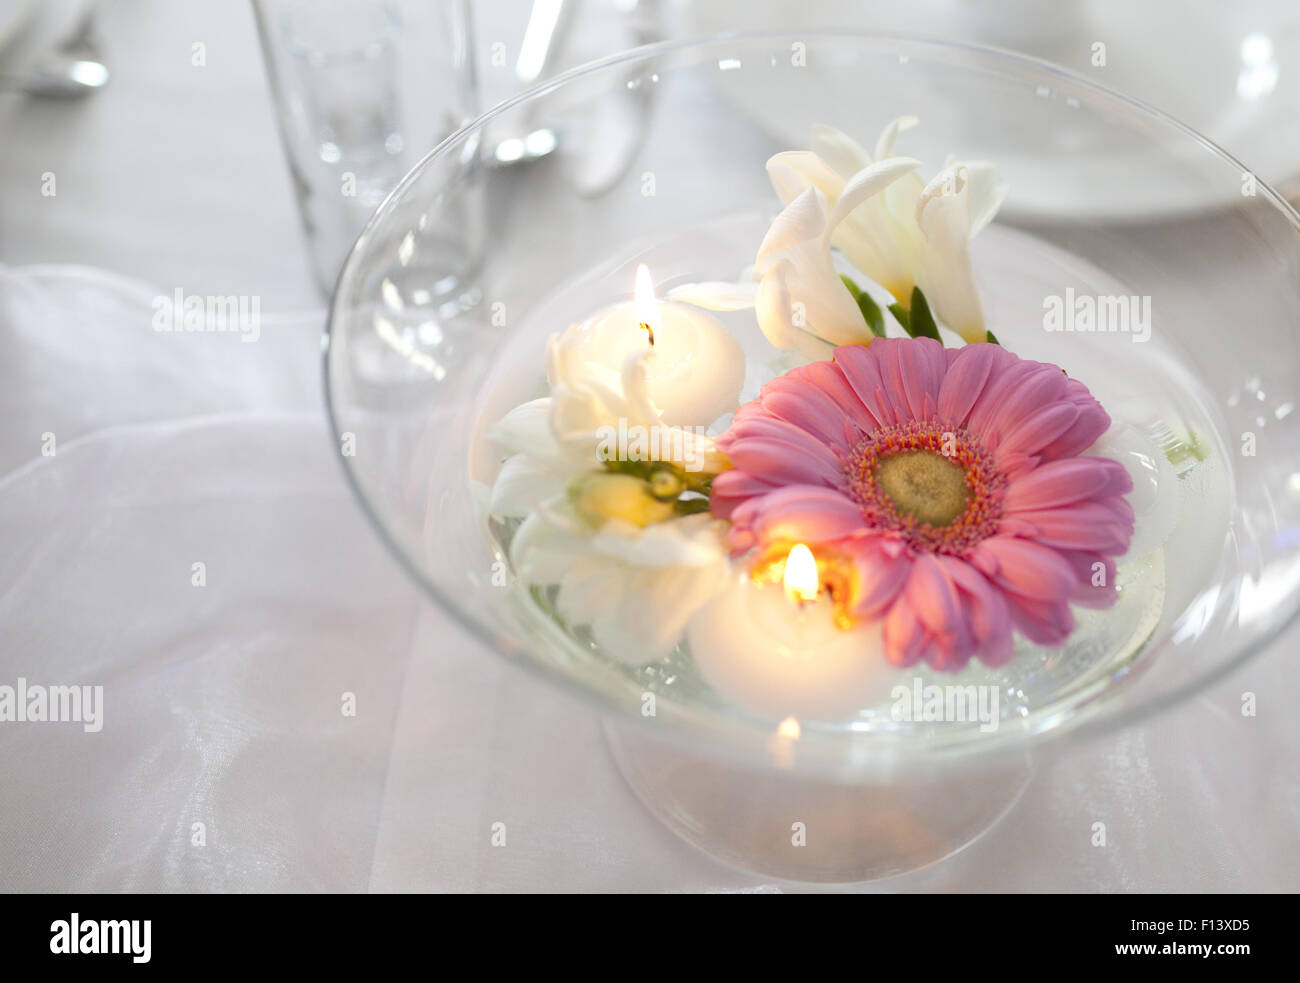 Floating Candle Stock Photos & Floating Candle Stock Images - Alamy